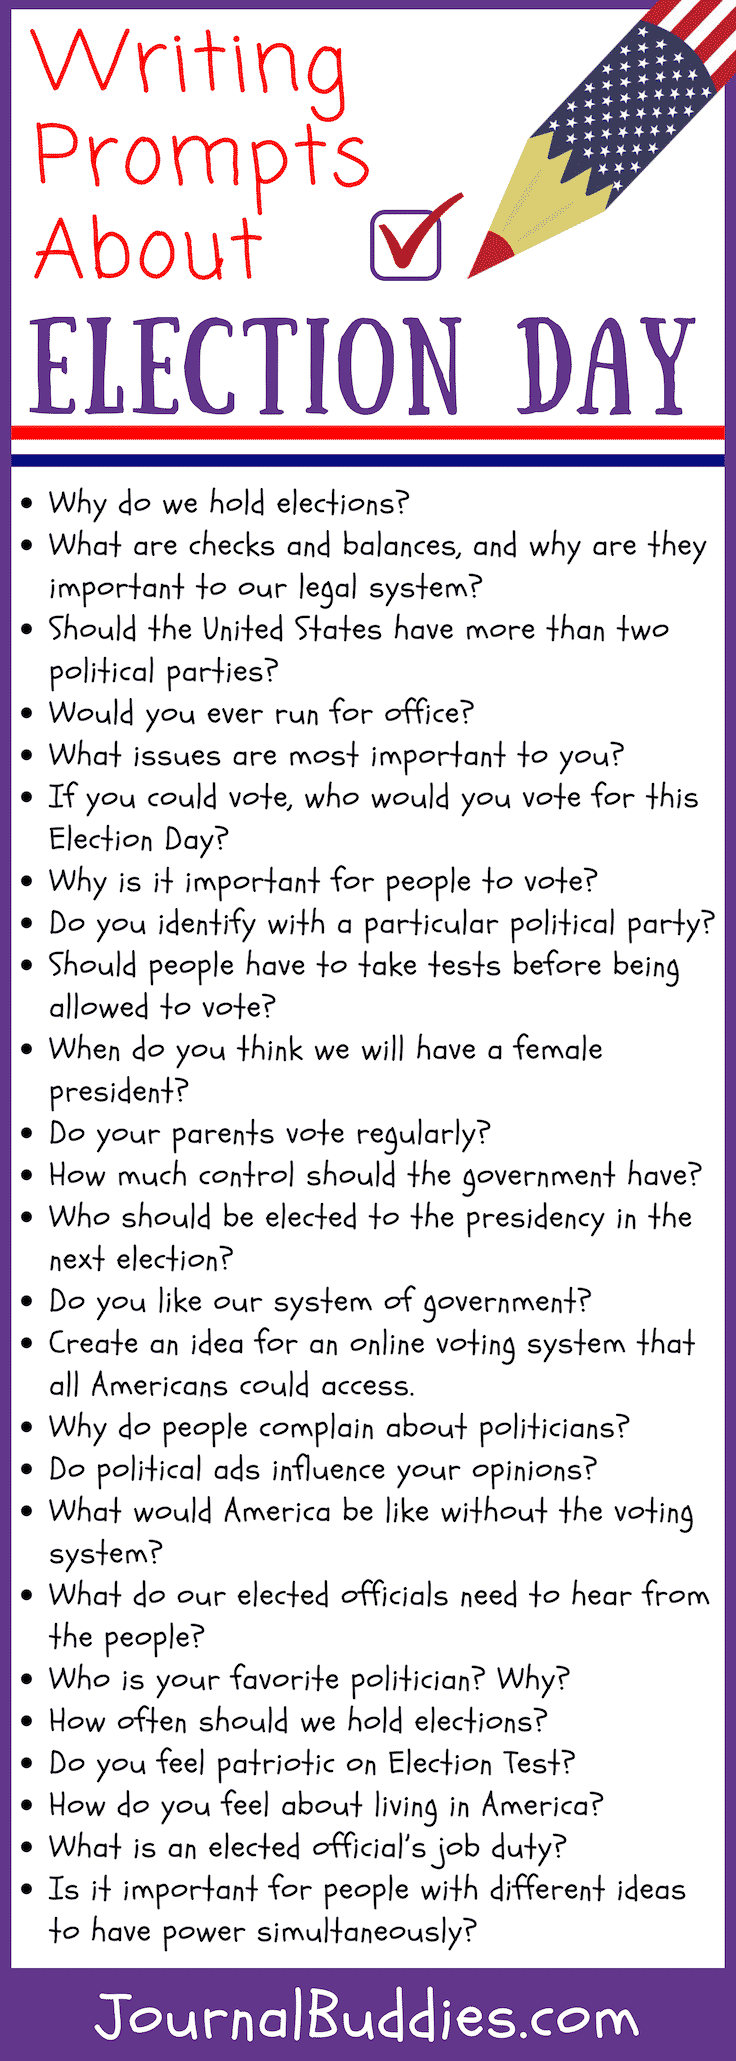 Writing Prompts for Election Day